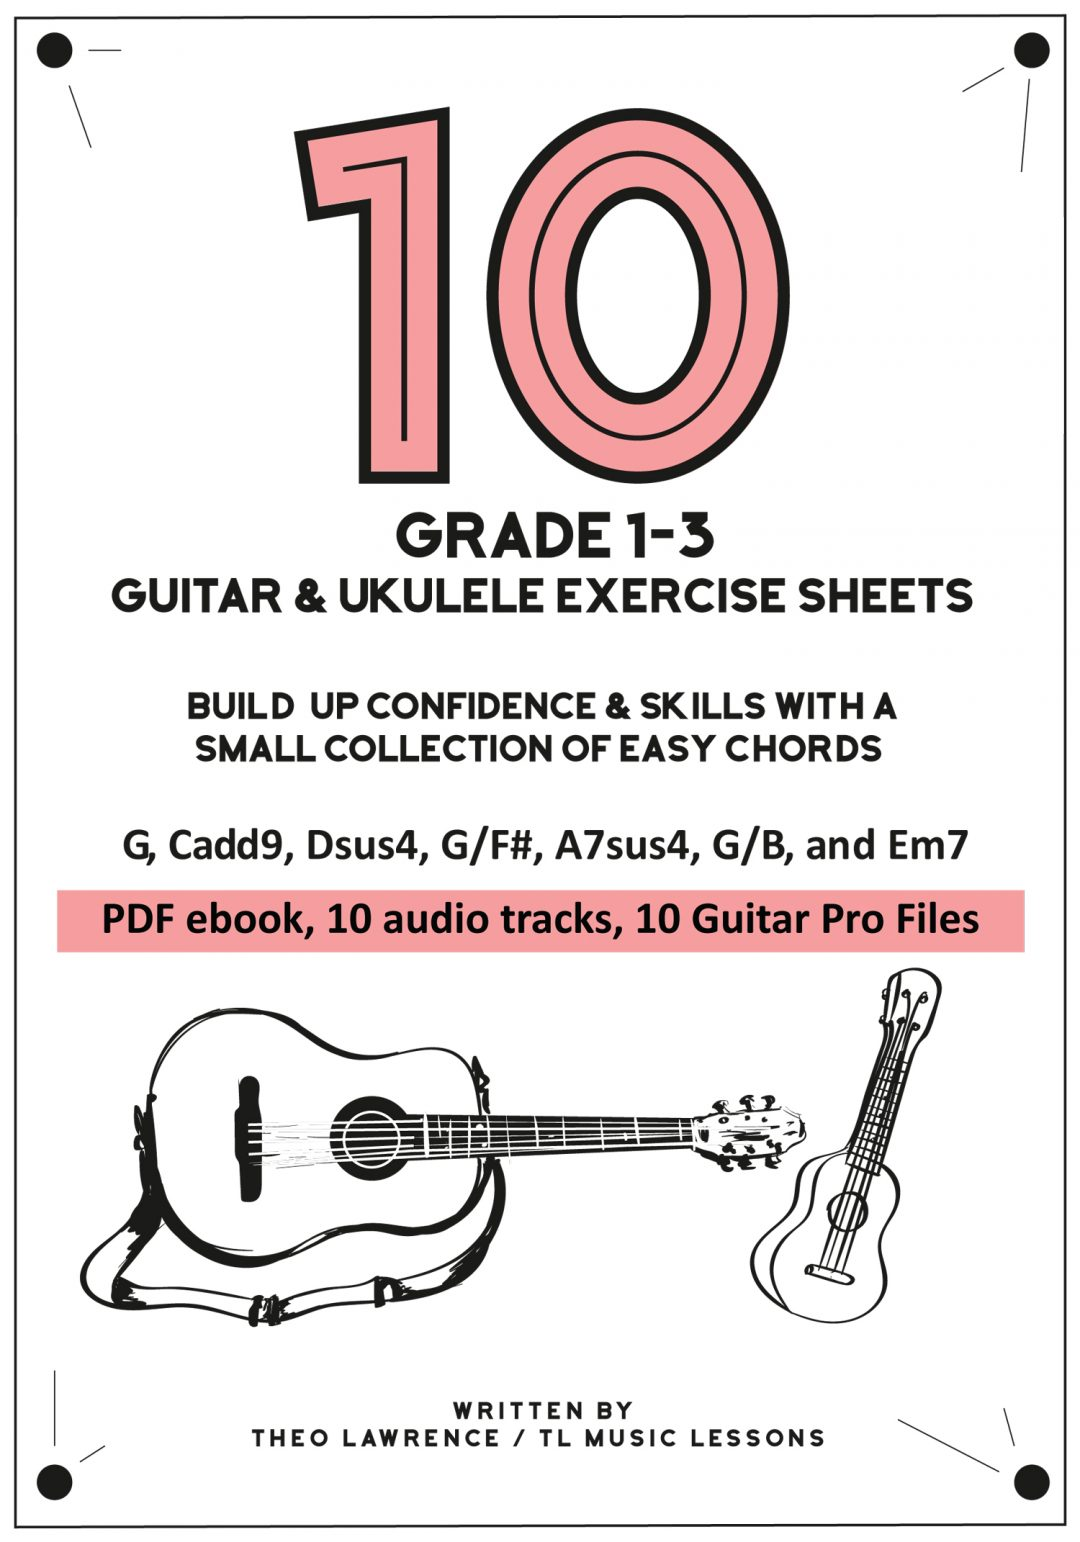 (Free ebook) – 10 Grade 1-3 Guitar & Ukulele Chord Exercise Sheets – Build up Confidence & Skills with a Small Collection of Easy Chords